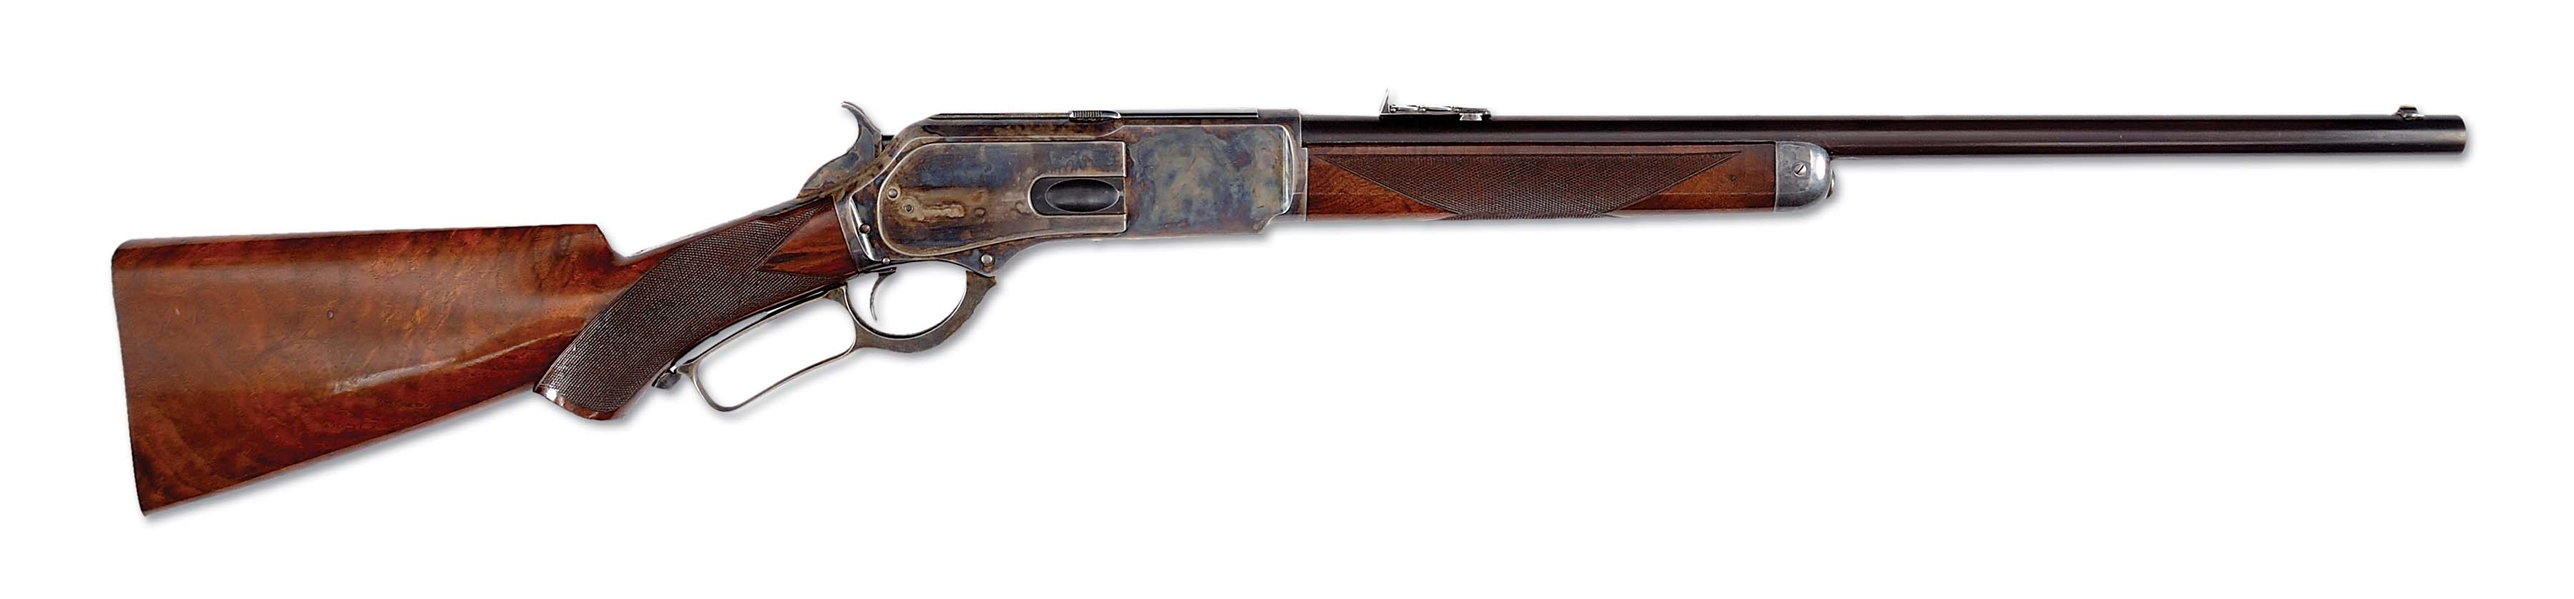 (A) EXCEPTIONAL WINCHESTER 1876 DELUXE RIFLE IN A 50 CALIBER.